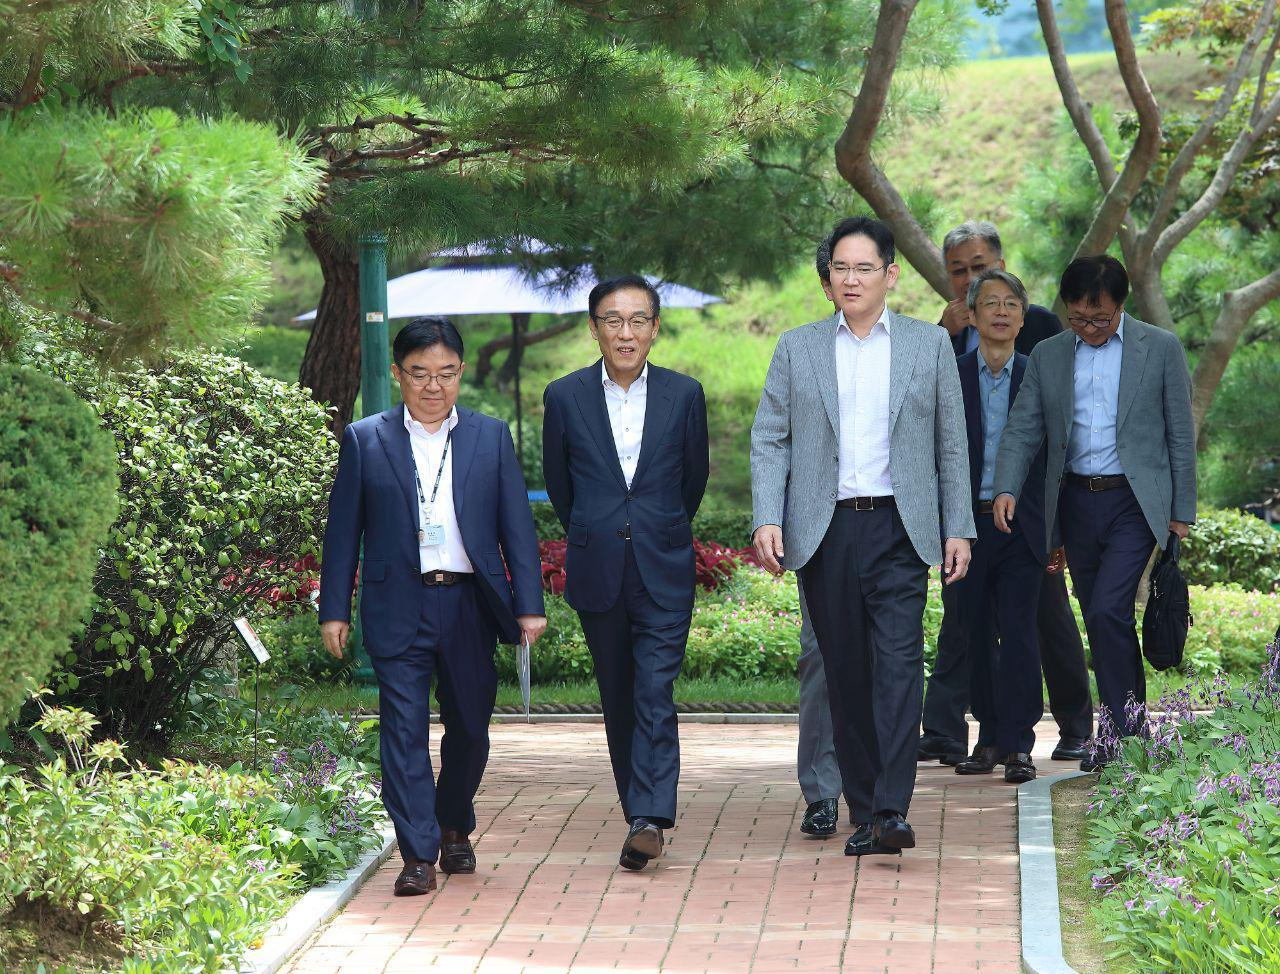 Samsung Electronics Vice Chairman Lee Jae-yong (third from left) visits the company's semiconductor packaging plant located in Onyang, South Chungcheong Province, Tuesday. S(amsung Electronics)